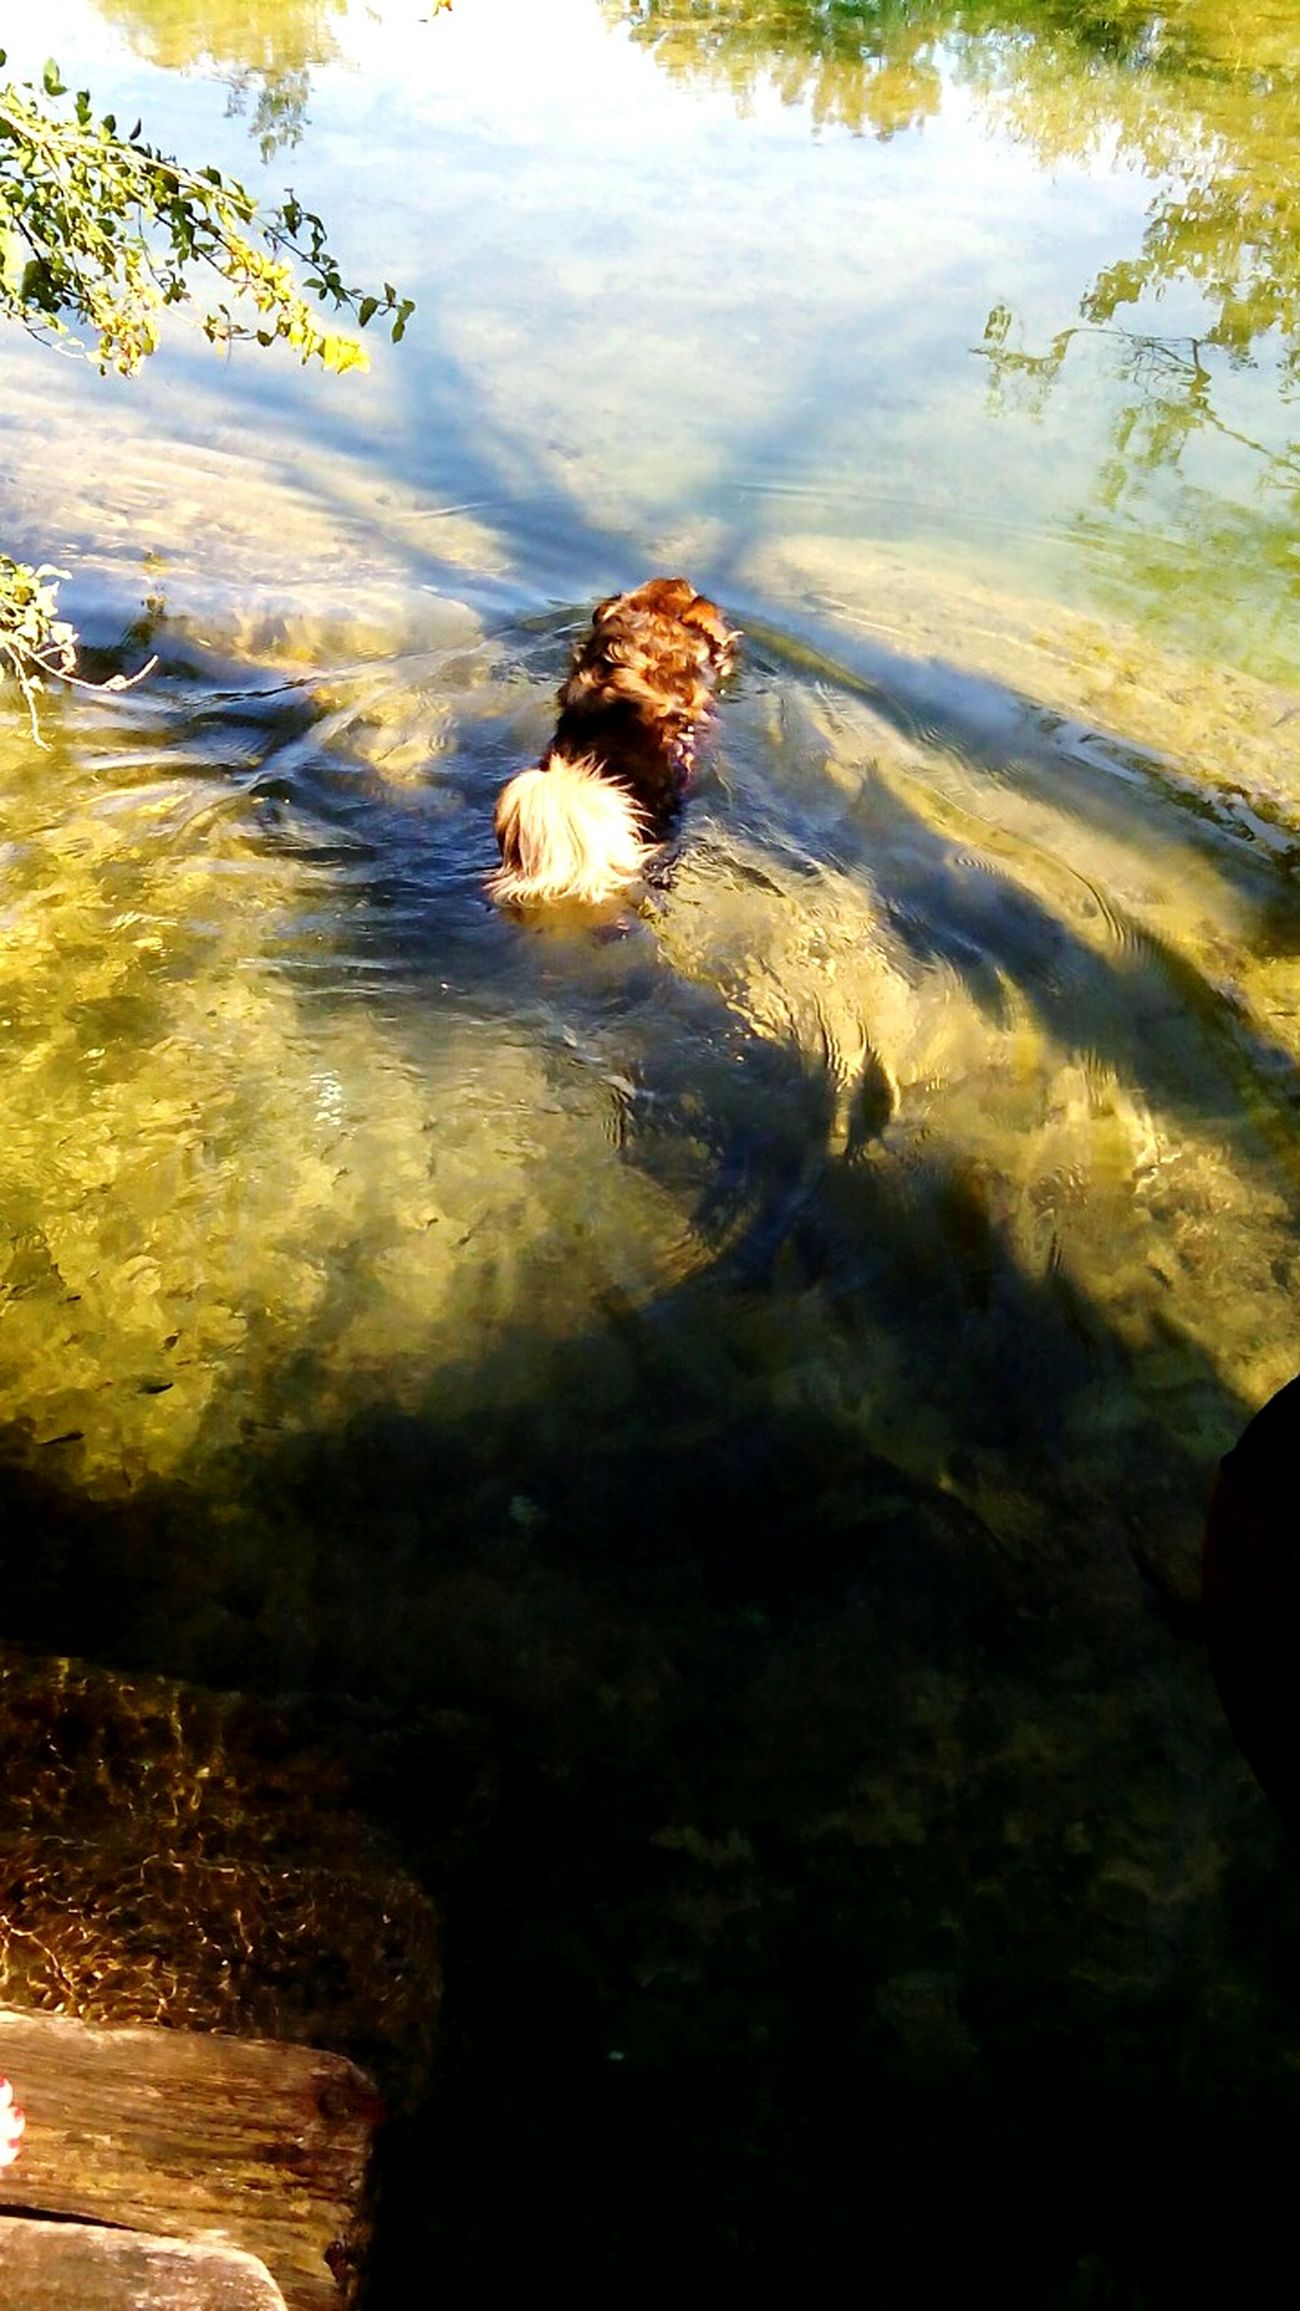 Riverscape Mreznica Open Edit Croatia Urban Sunbathing Water Reflections Walking Around Tadaa Community Dog